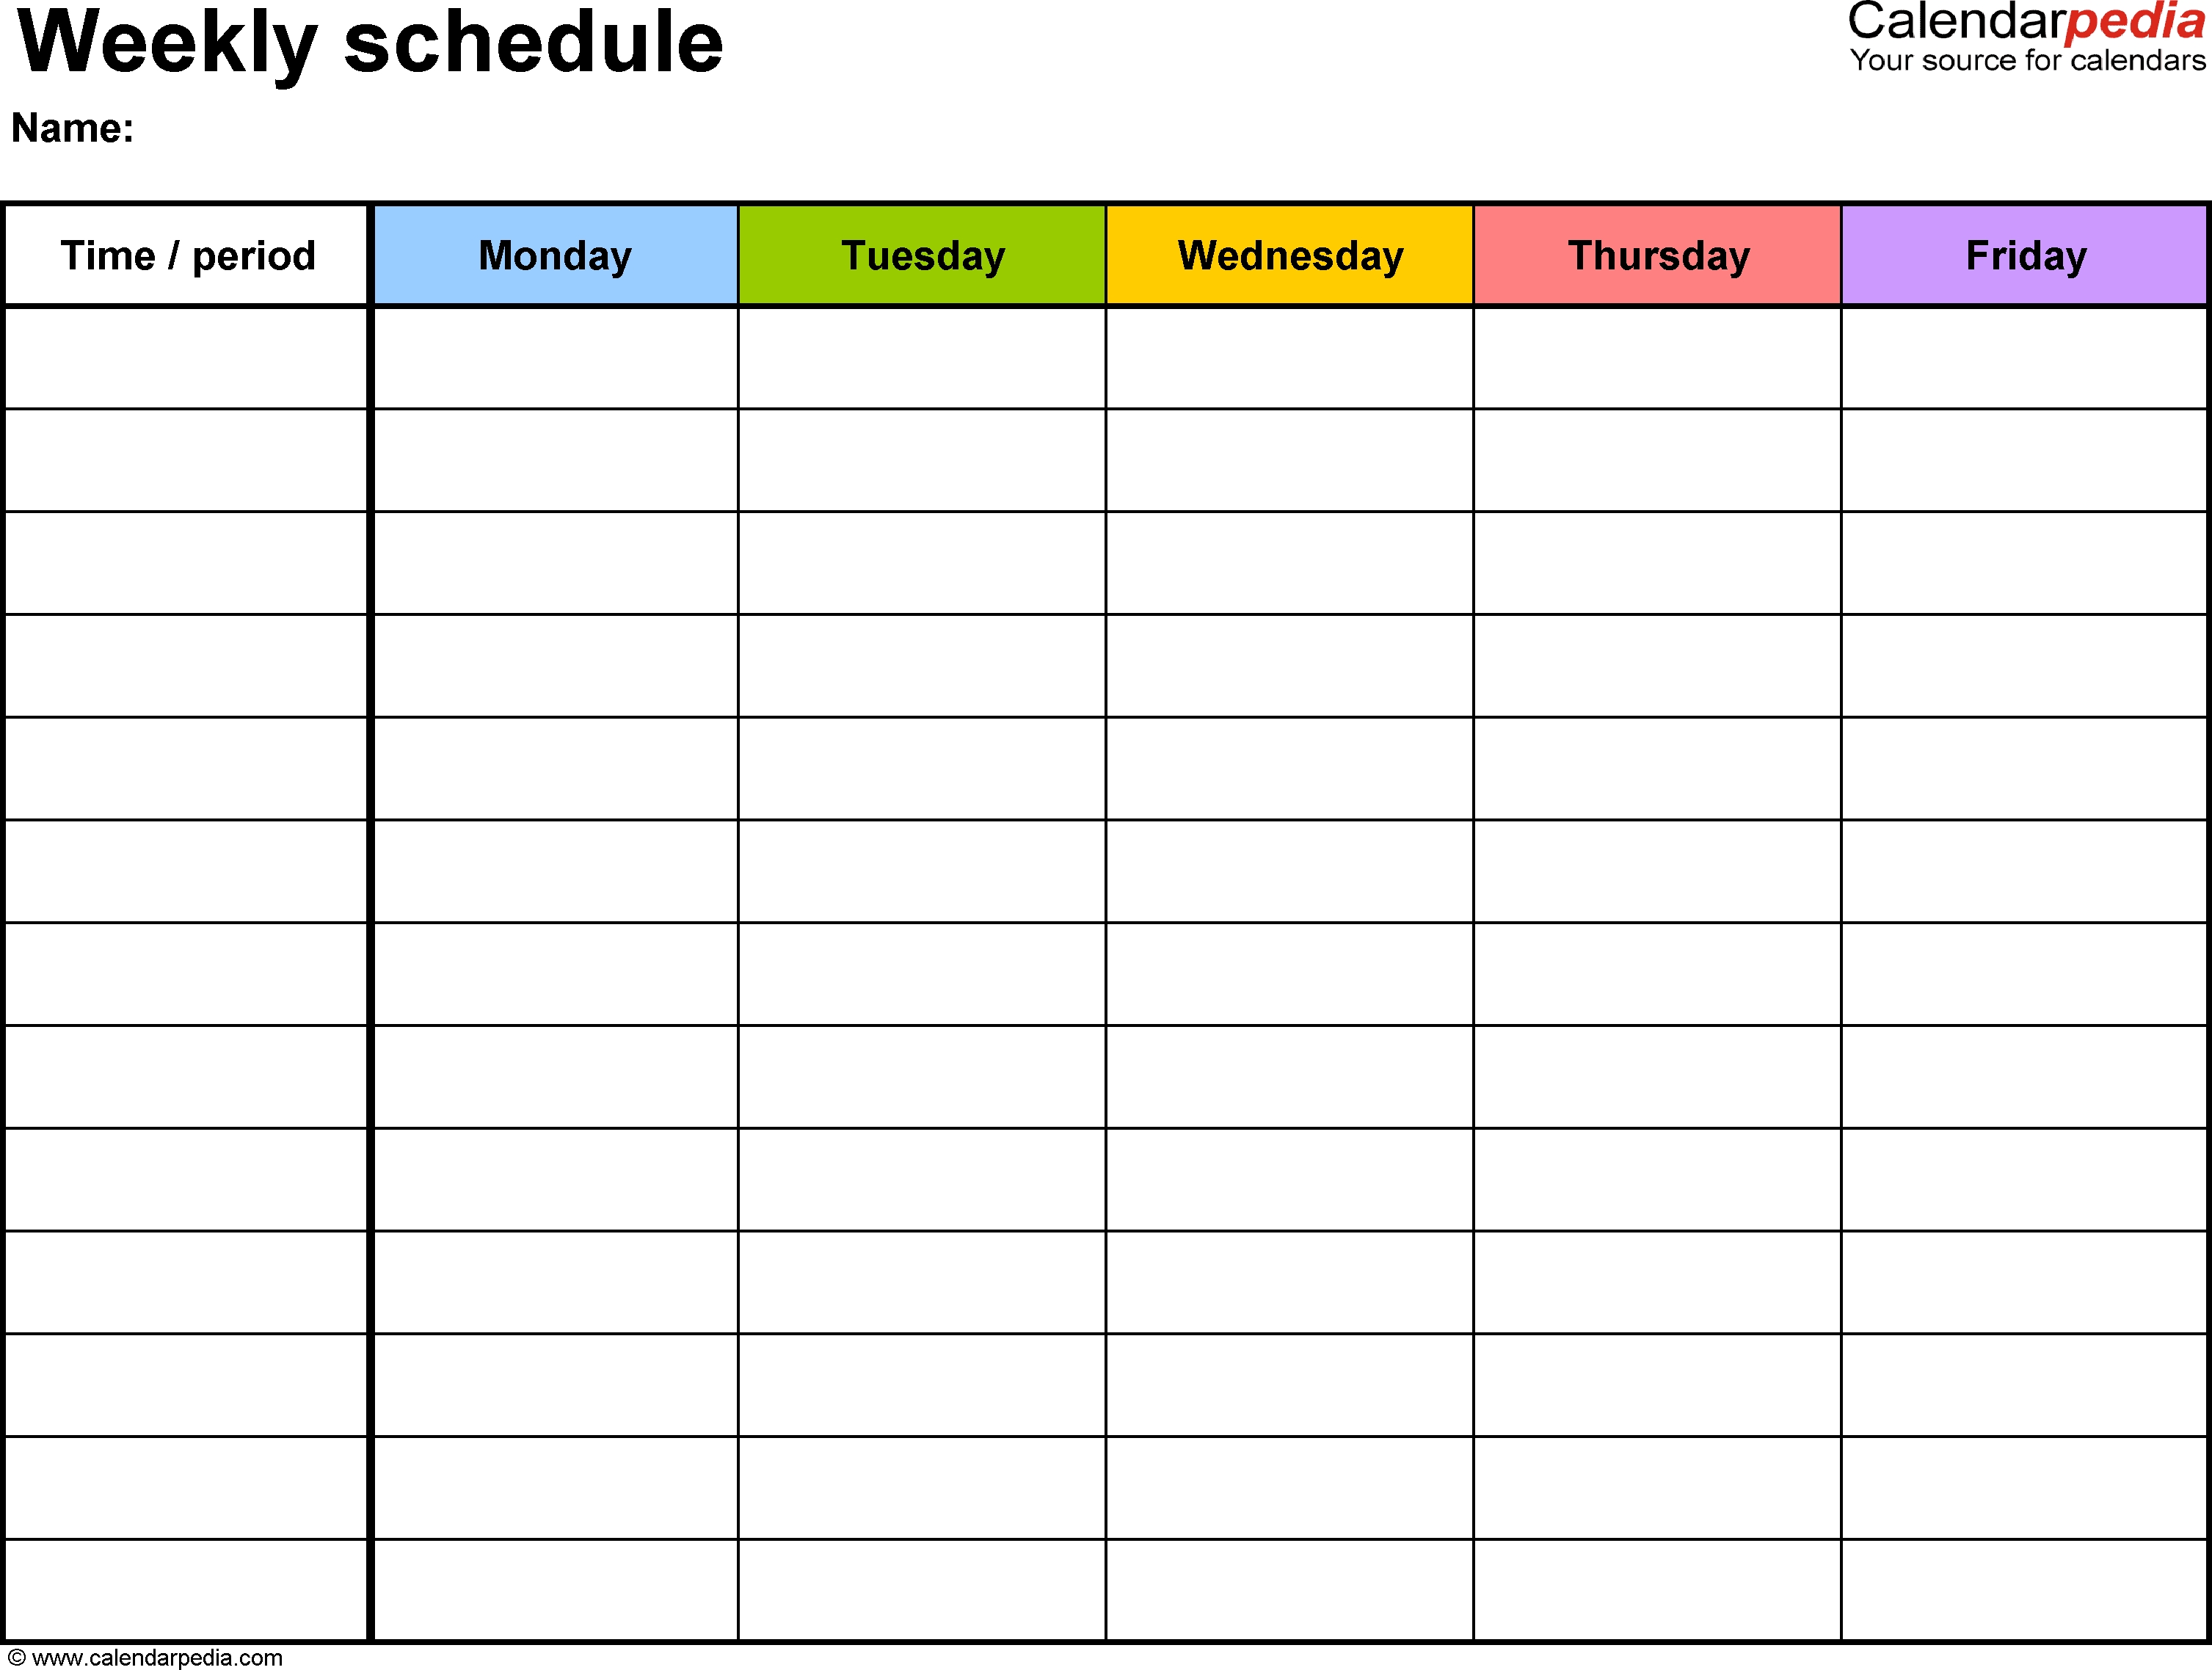 Free Weekly Schedule Templates For Word - 18 Templates inside Printable Calendar Weekly Planner Free